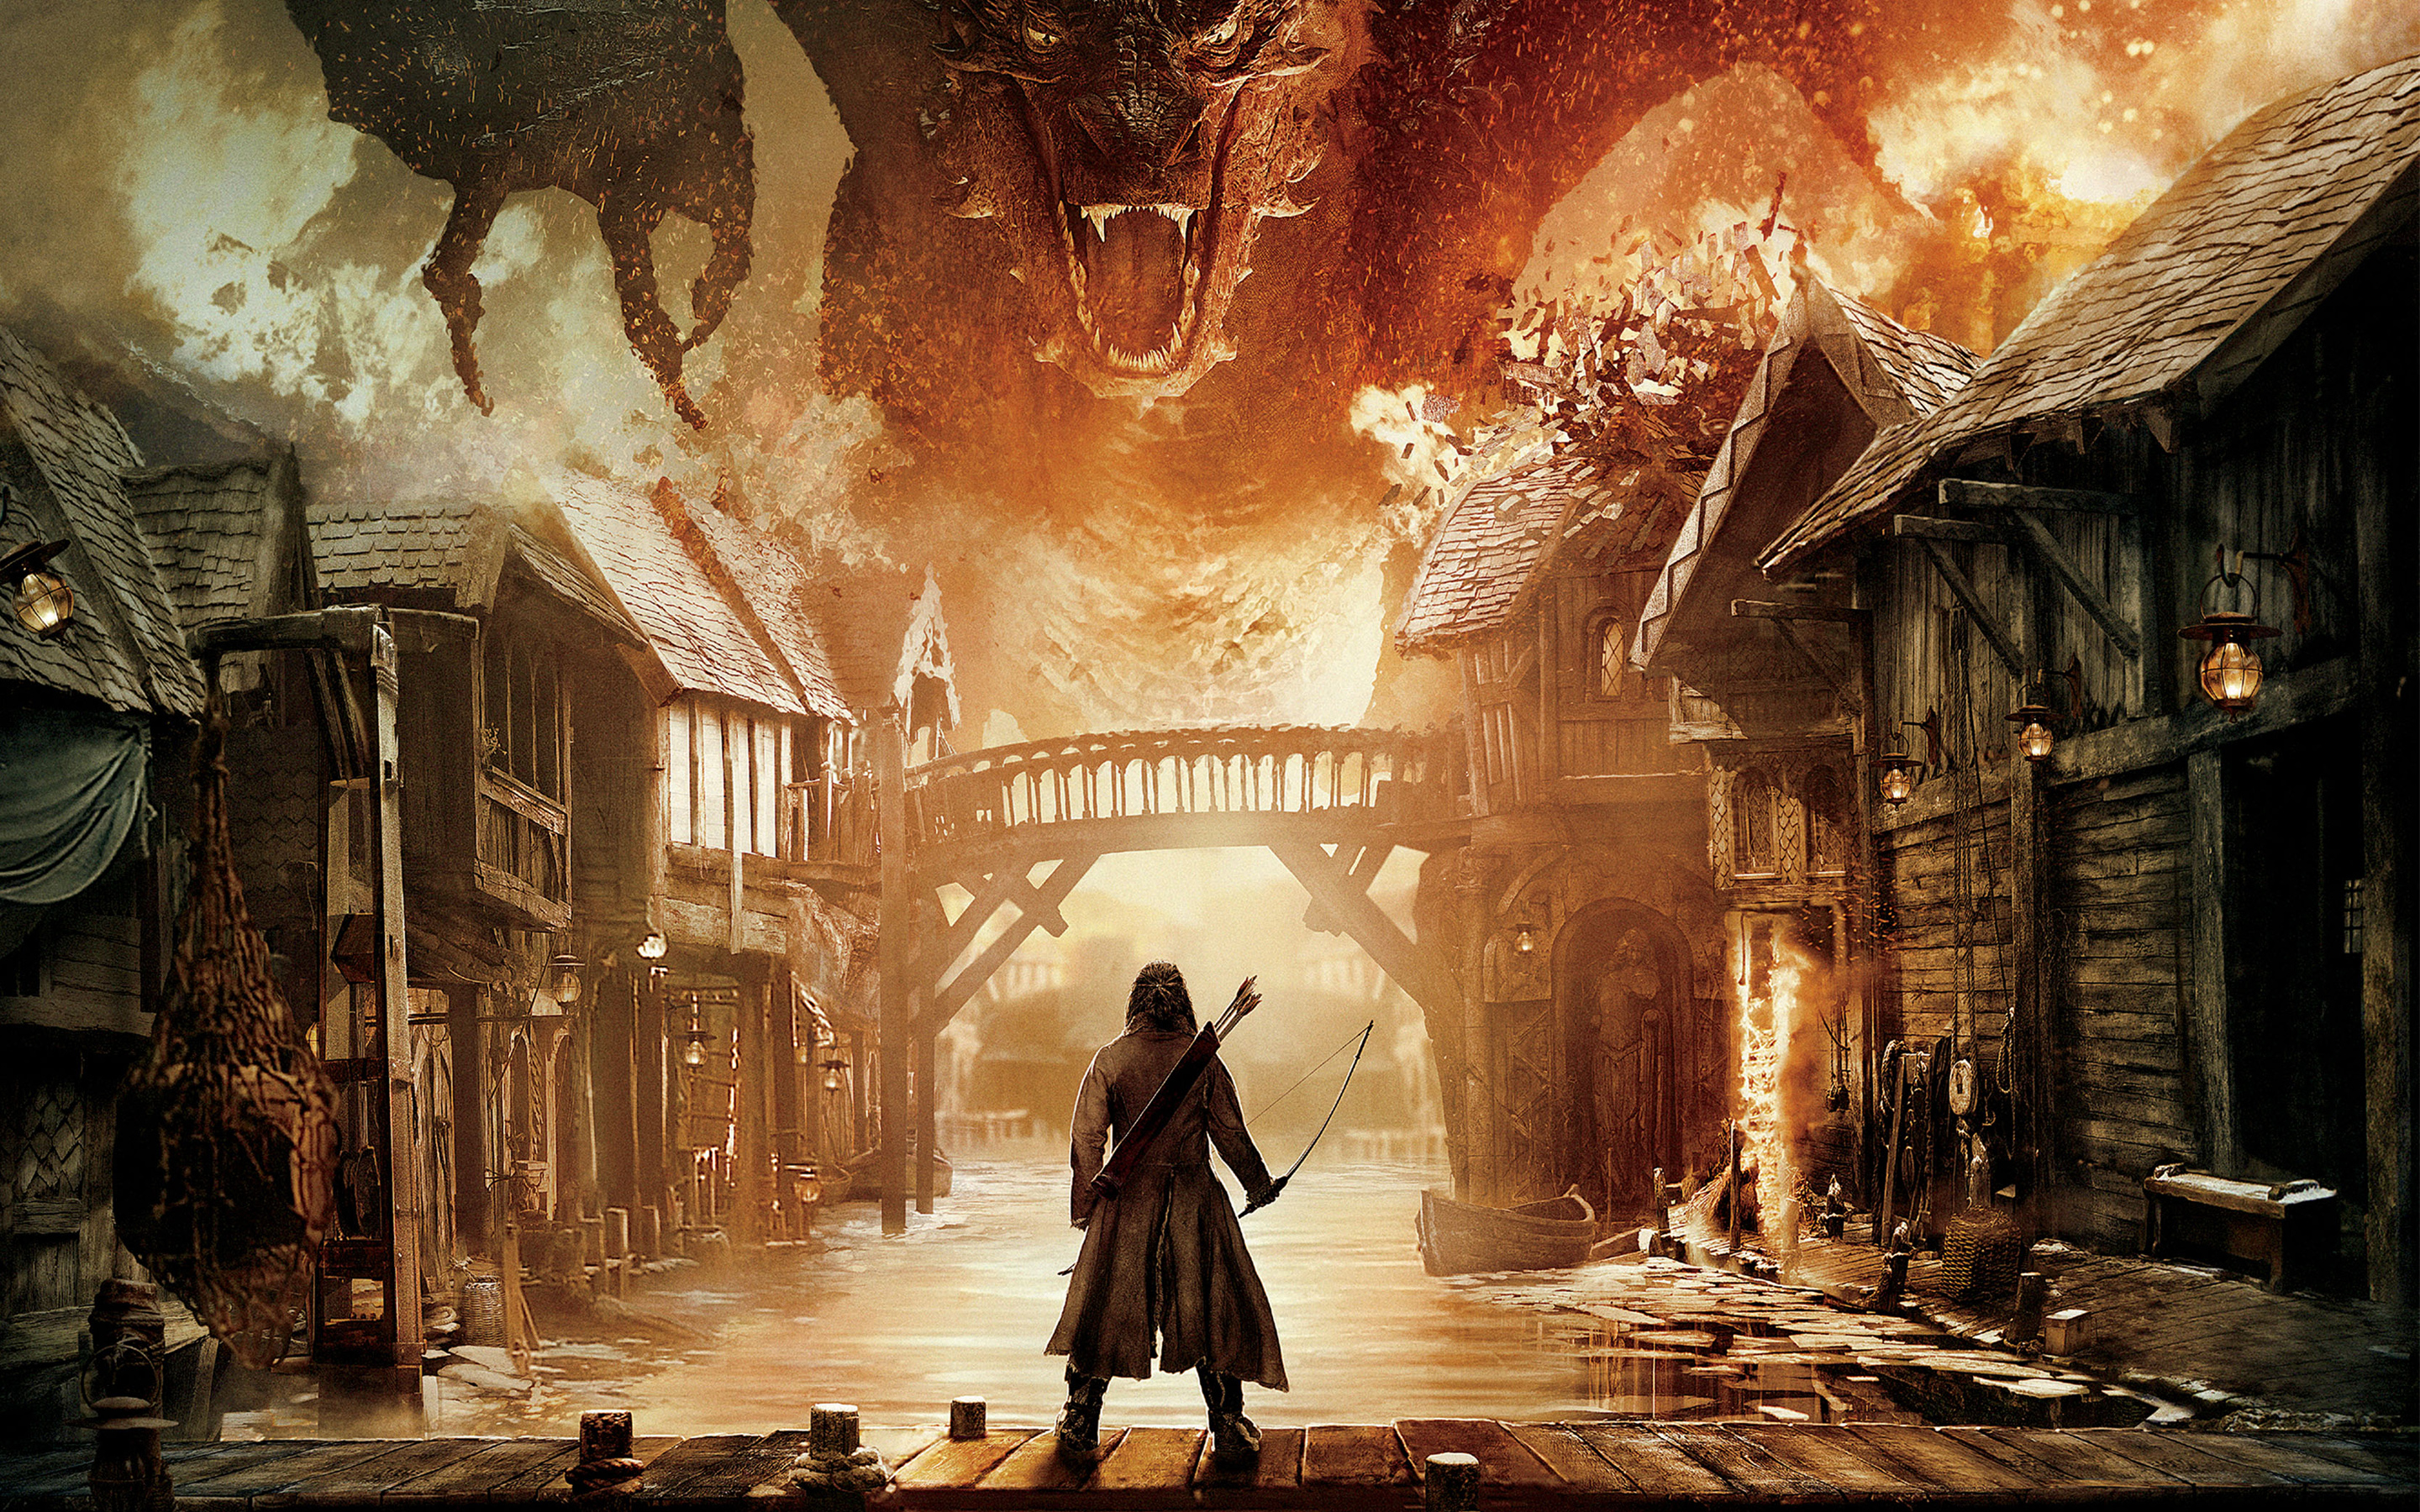 The Hobbit The Battle of the Five Armies Wallpapers HD Wallpapers 2880x1800